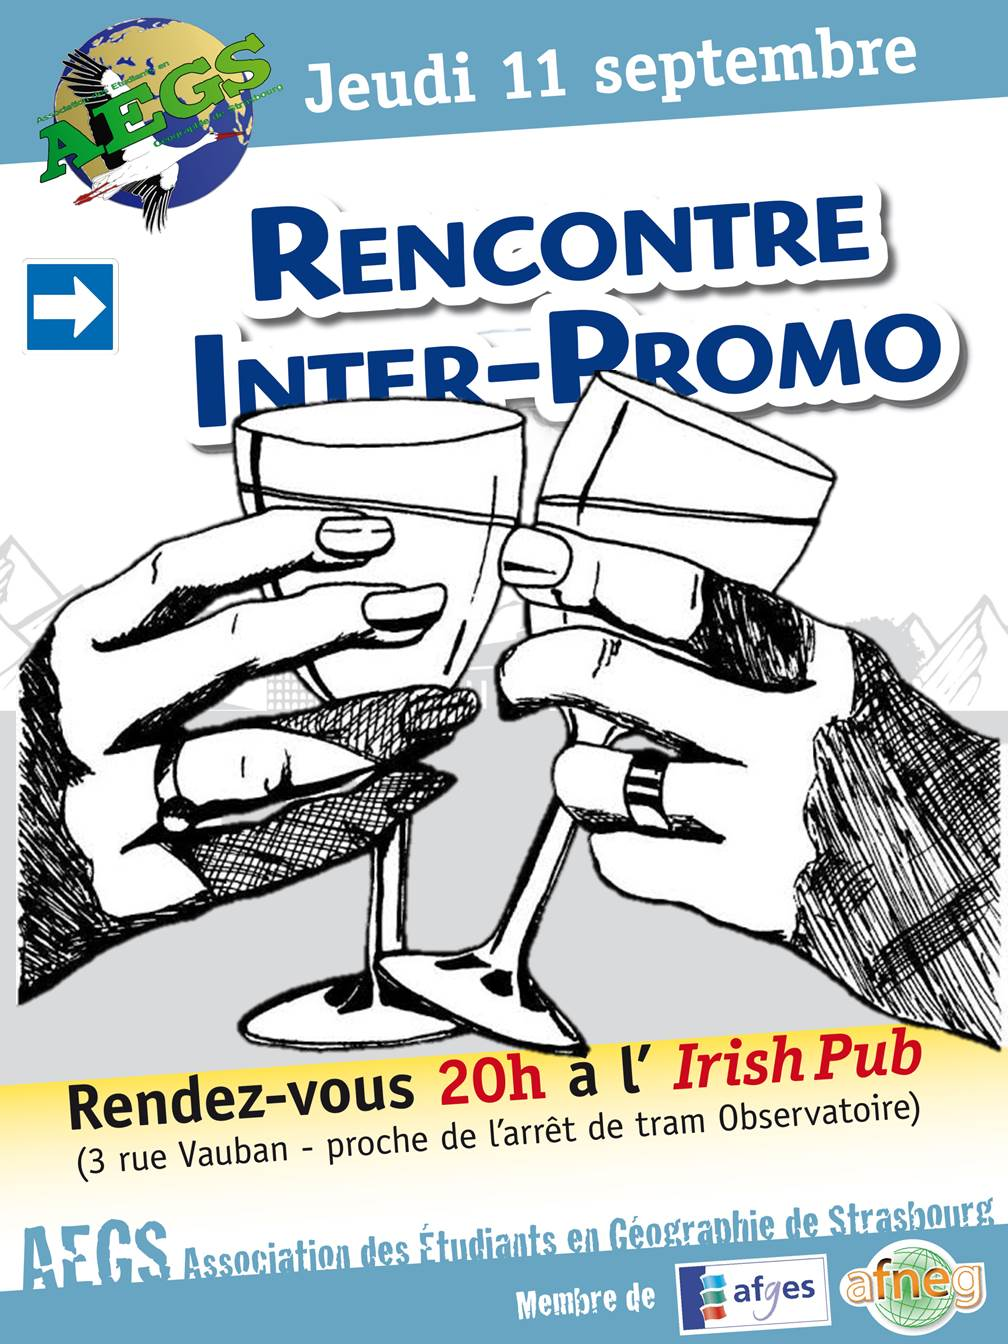 rencontre interpromo